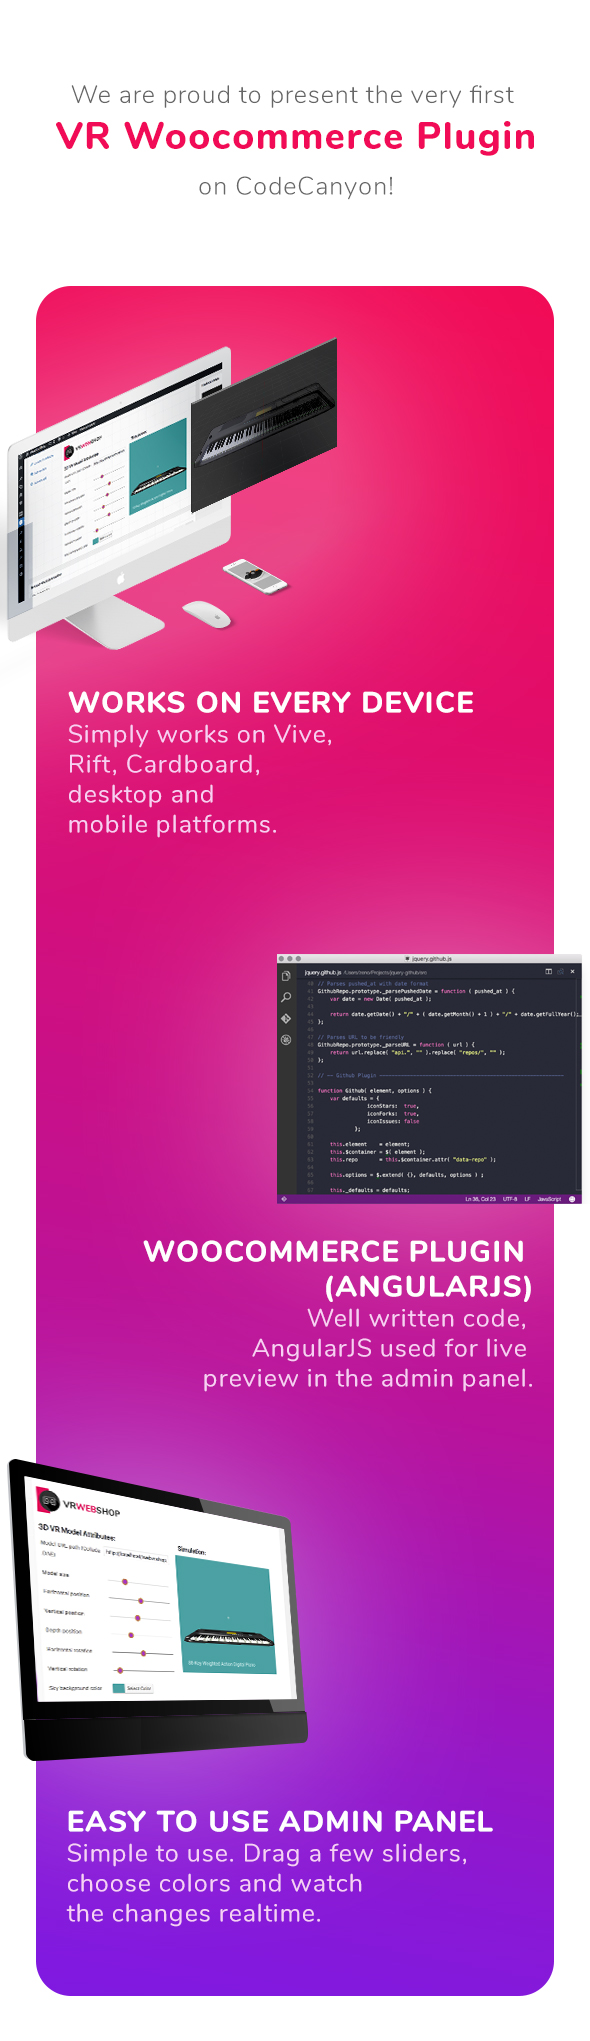 Add 3D models to any Woocommerce shop - Web Virtual Reality